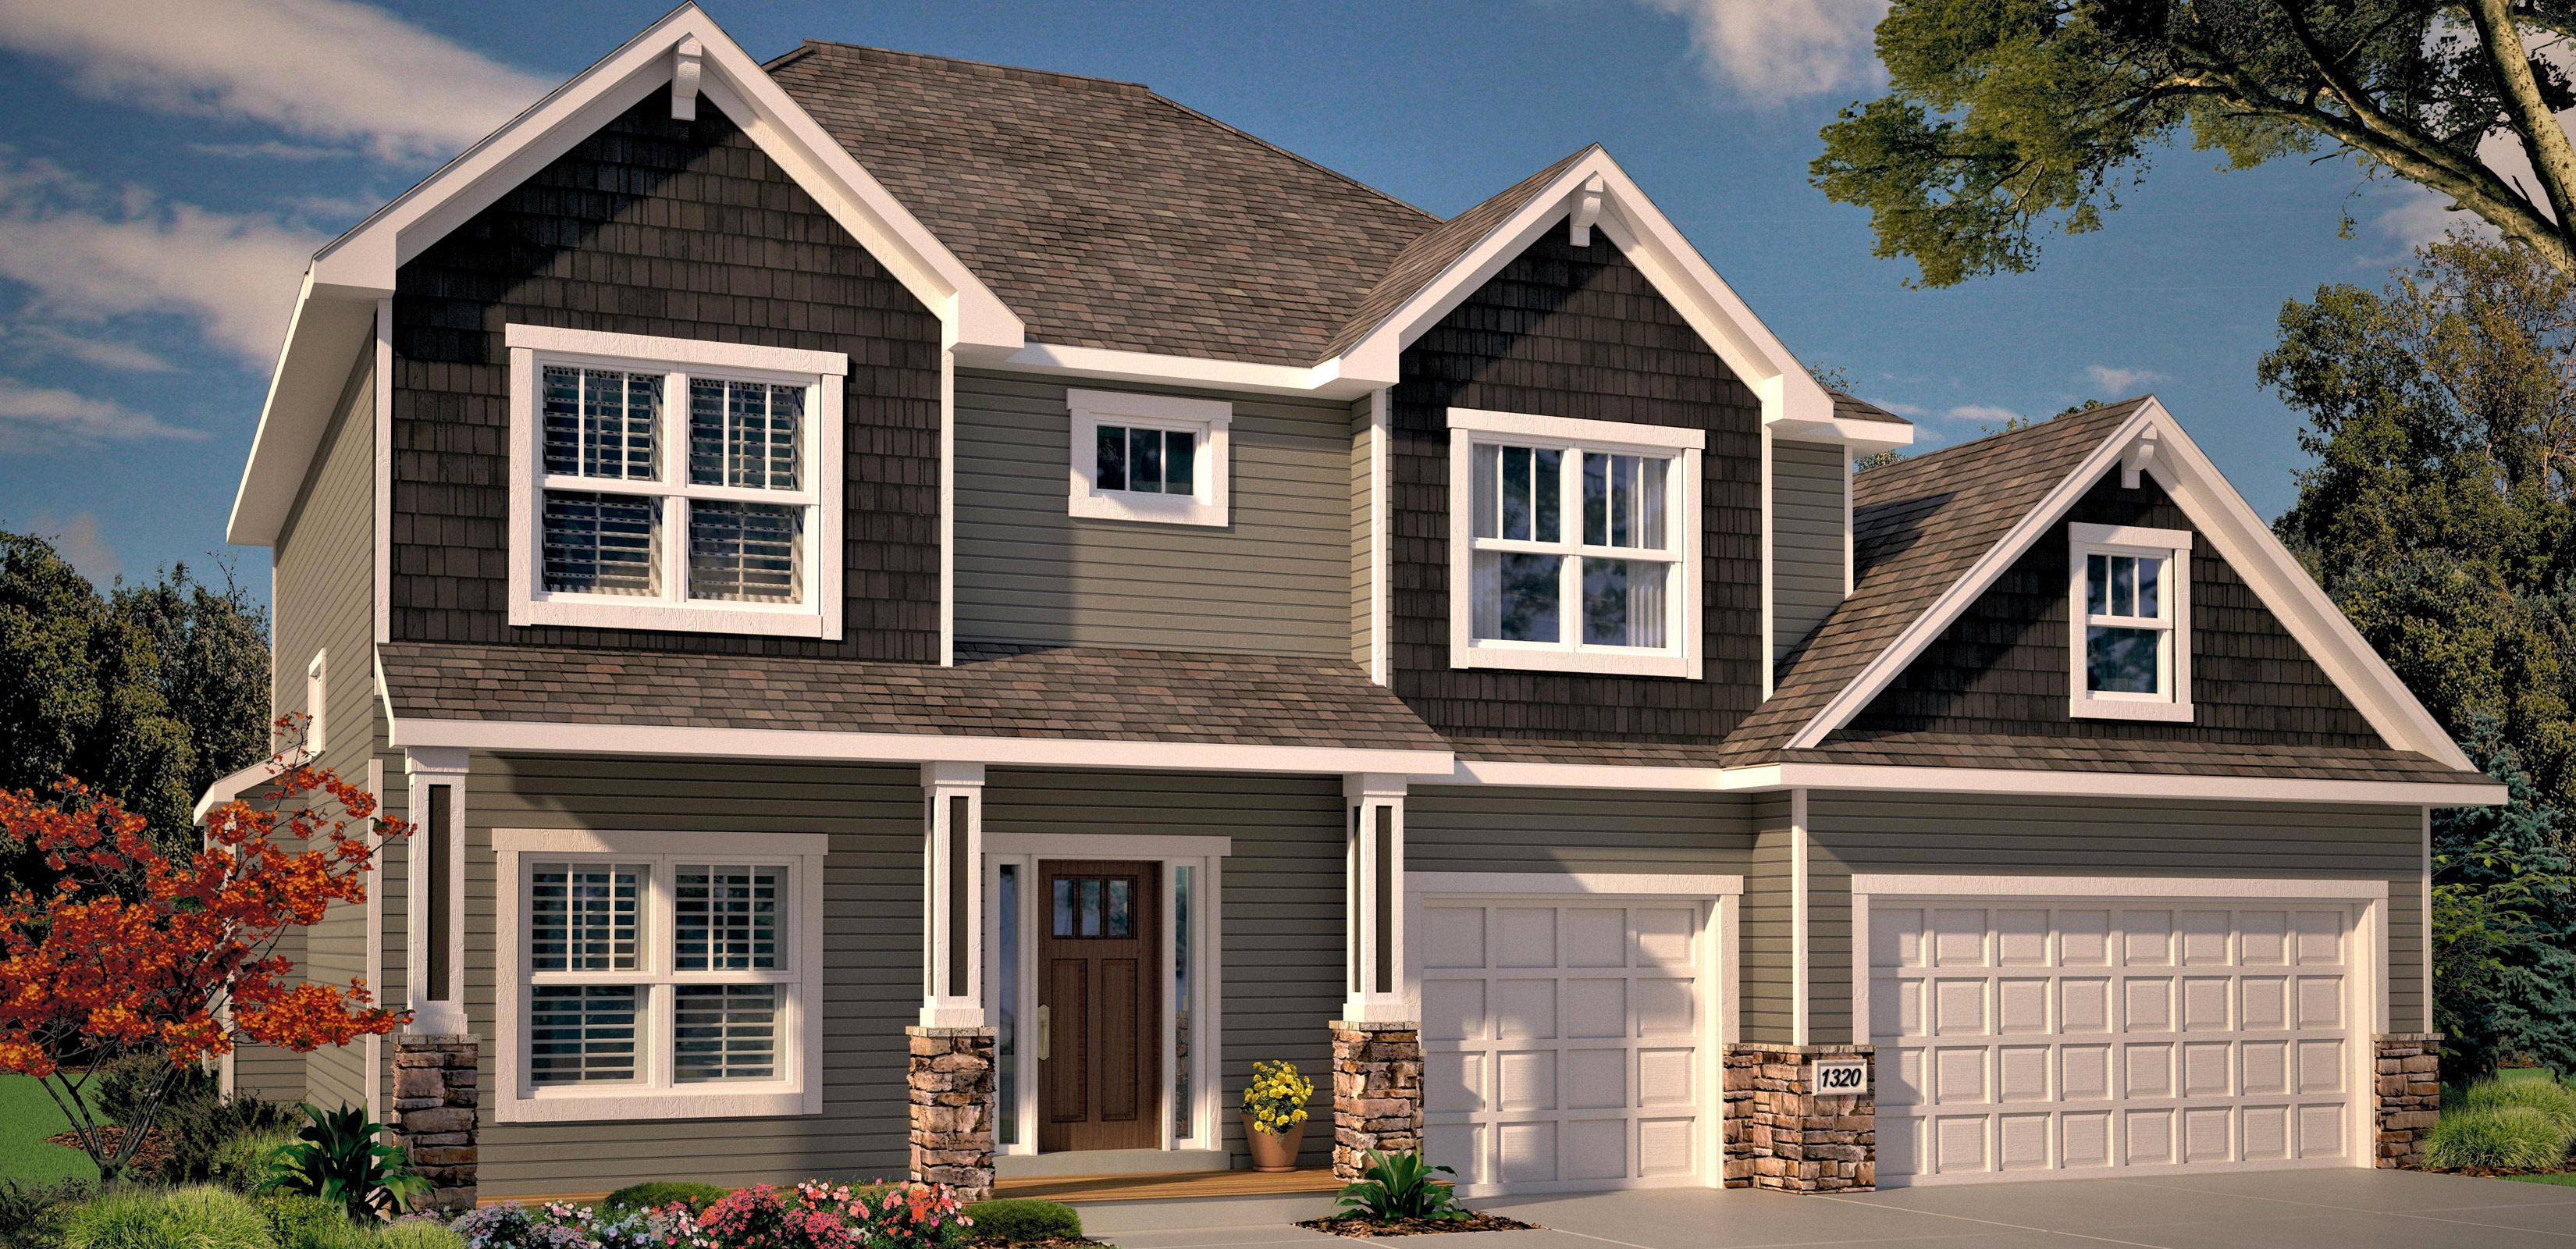 'Knob Hill' by Brandl Anderson Homes in Minneapolis-St. Paul